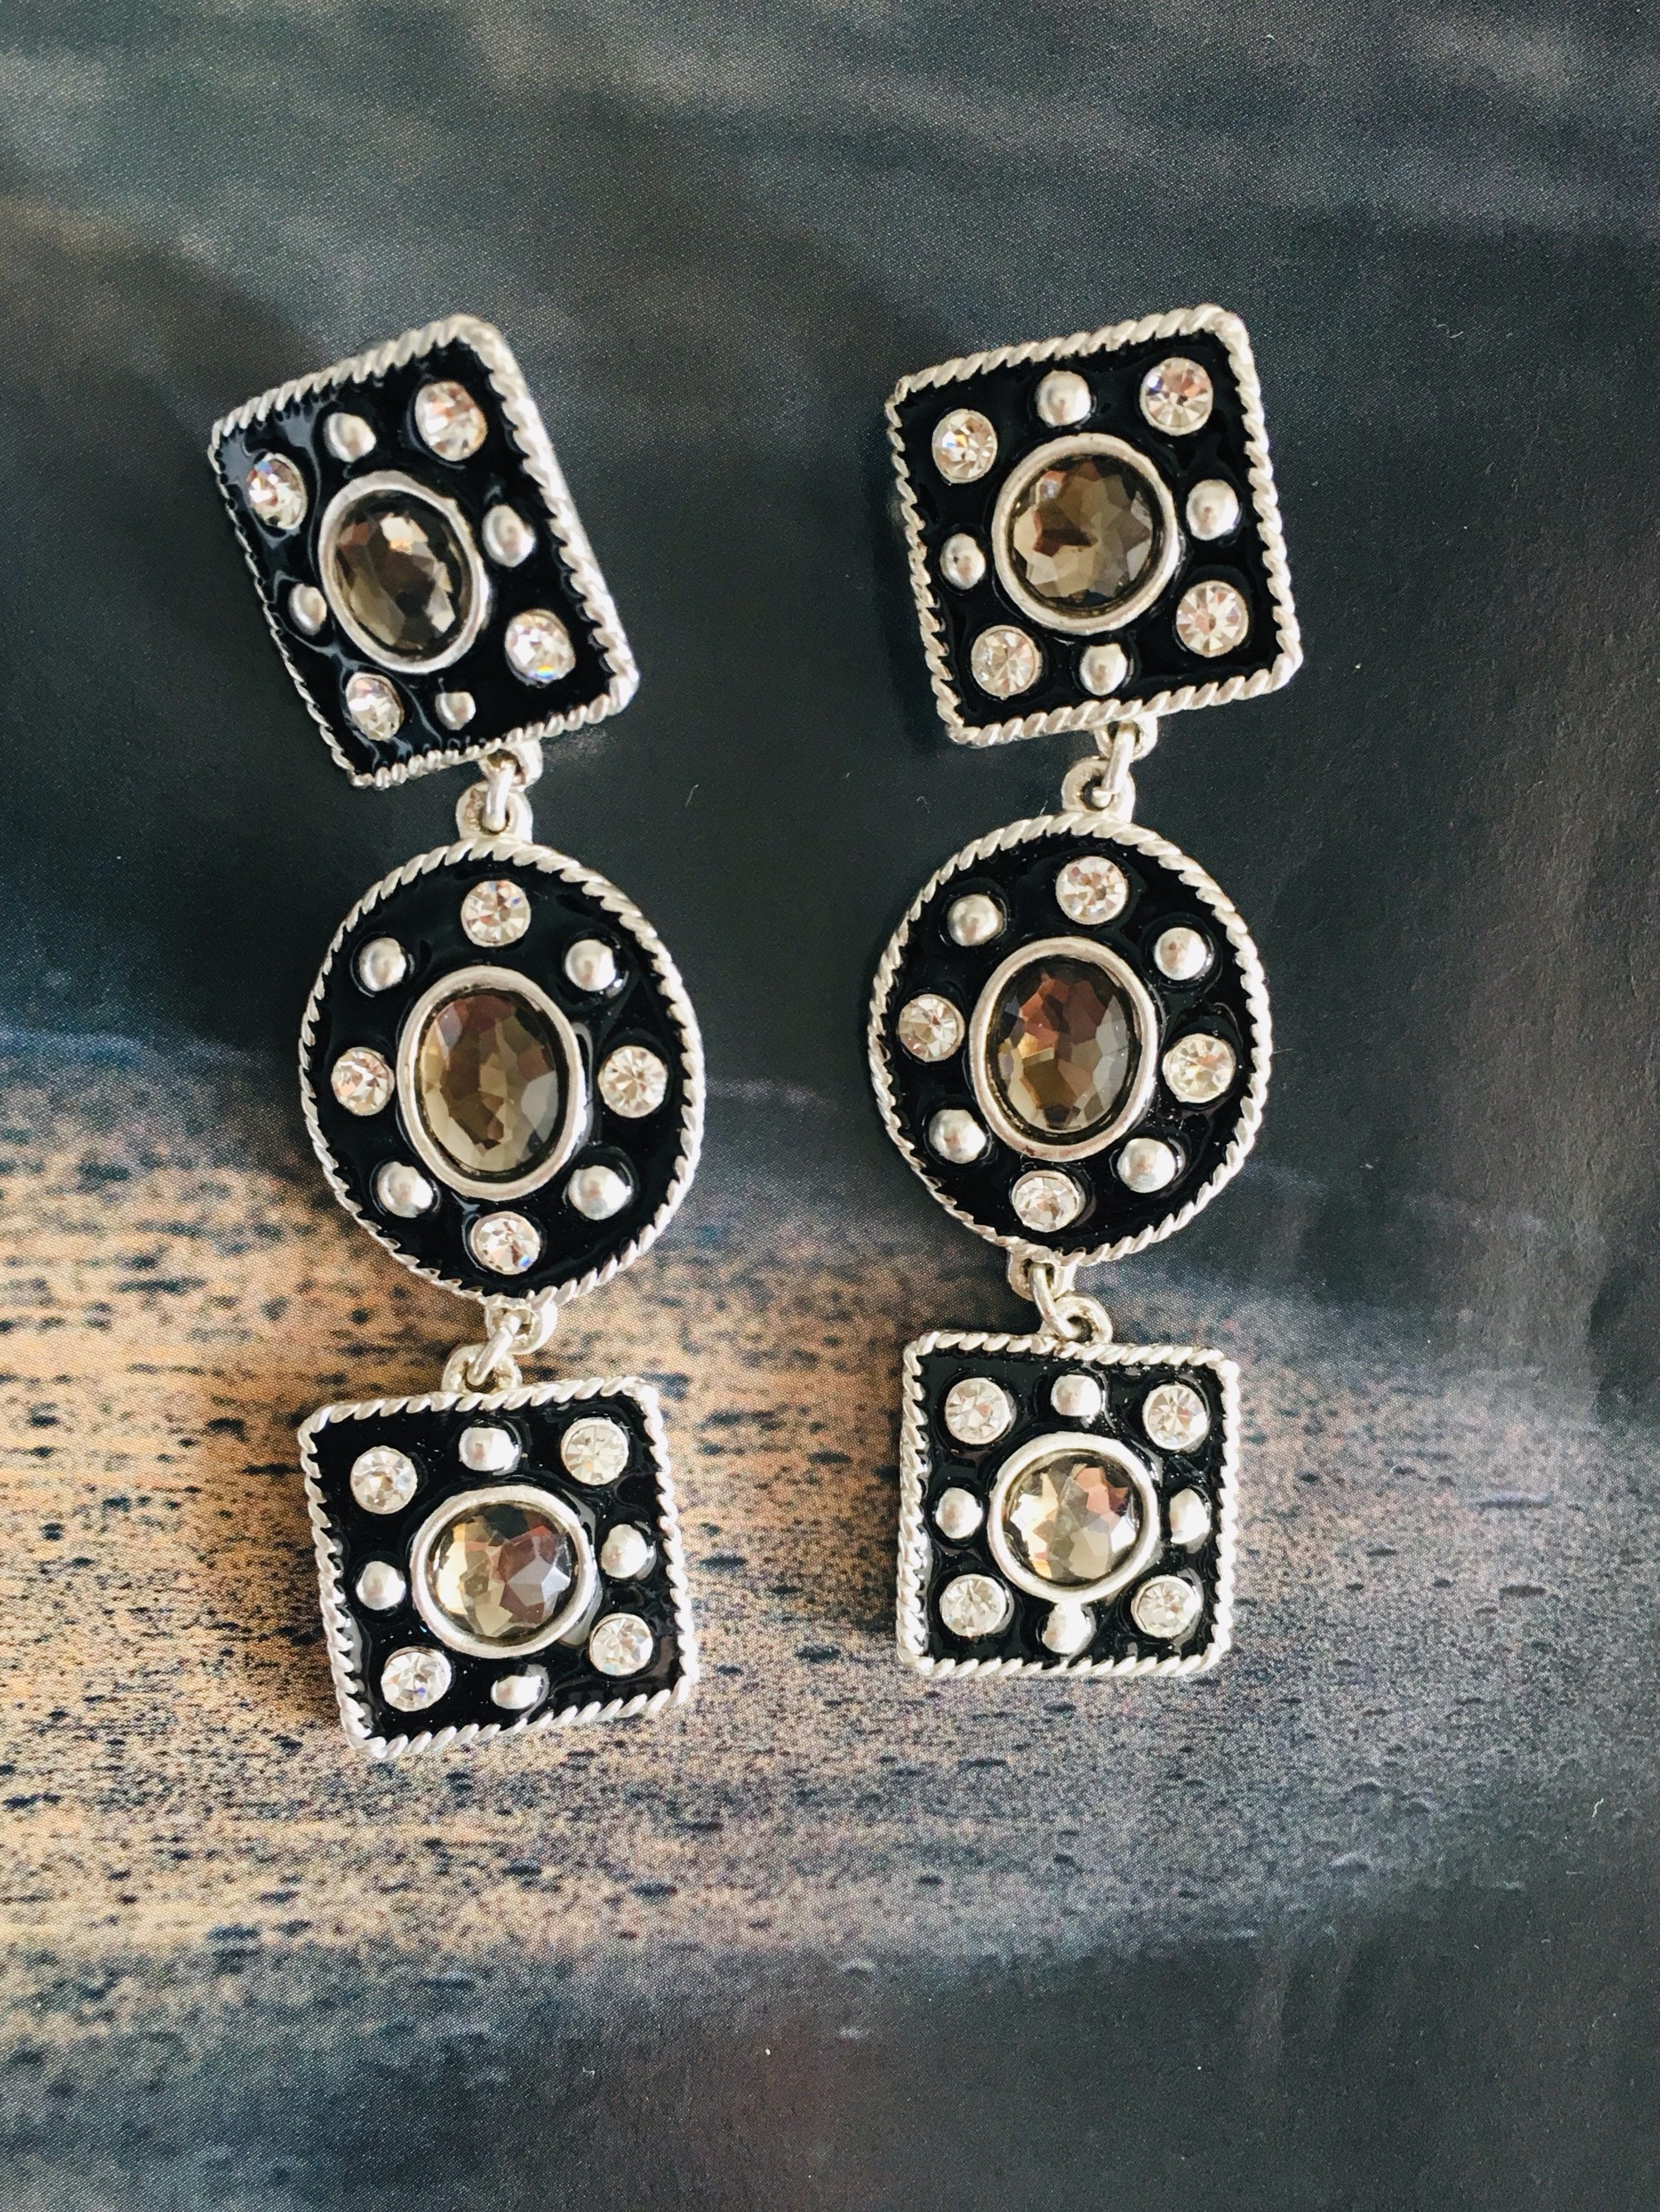 1f8241c0c719d2 DOLCE VITA - long earrings in silver metal clips, black enamel, cabochons  smoky resin and rhinestones-great for going out!